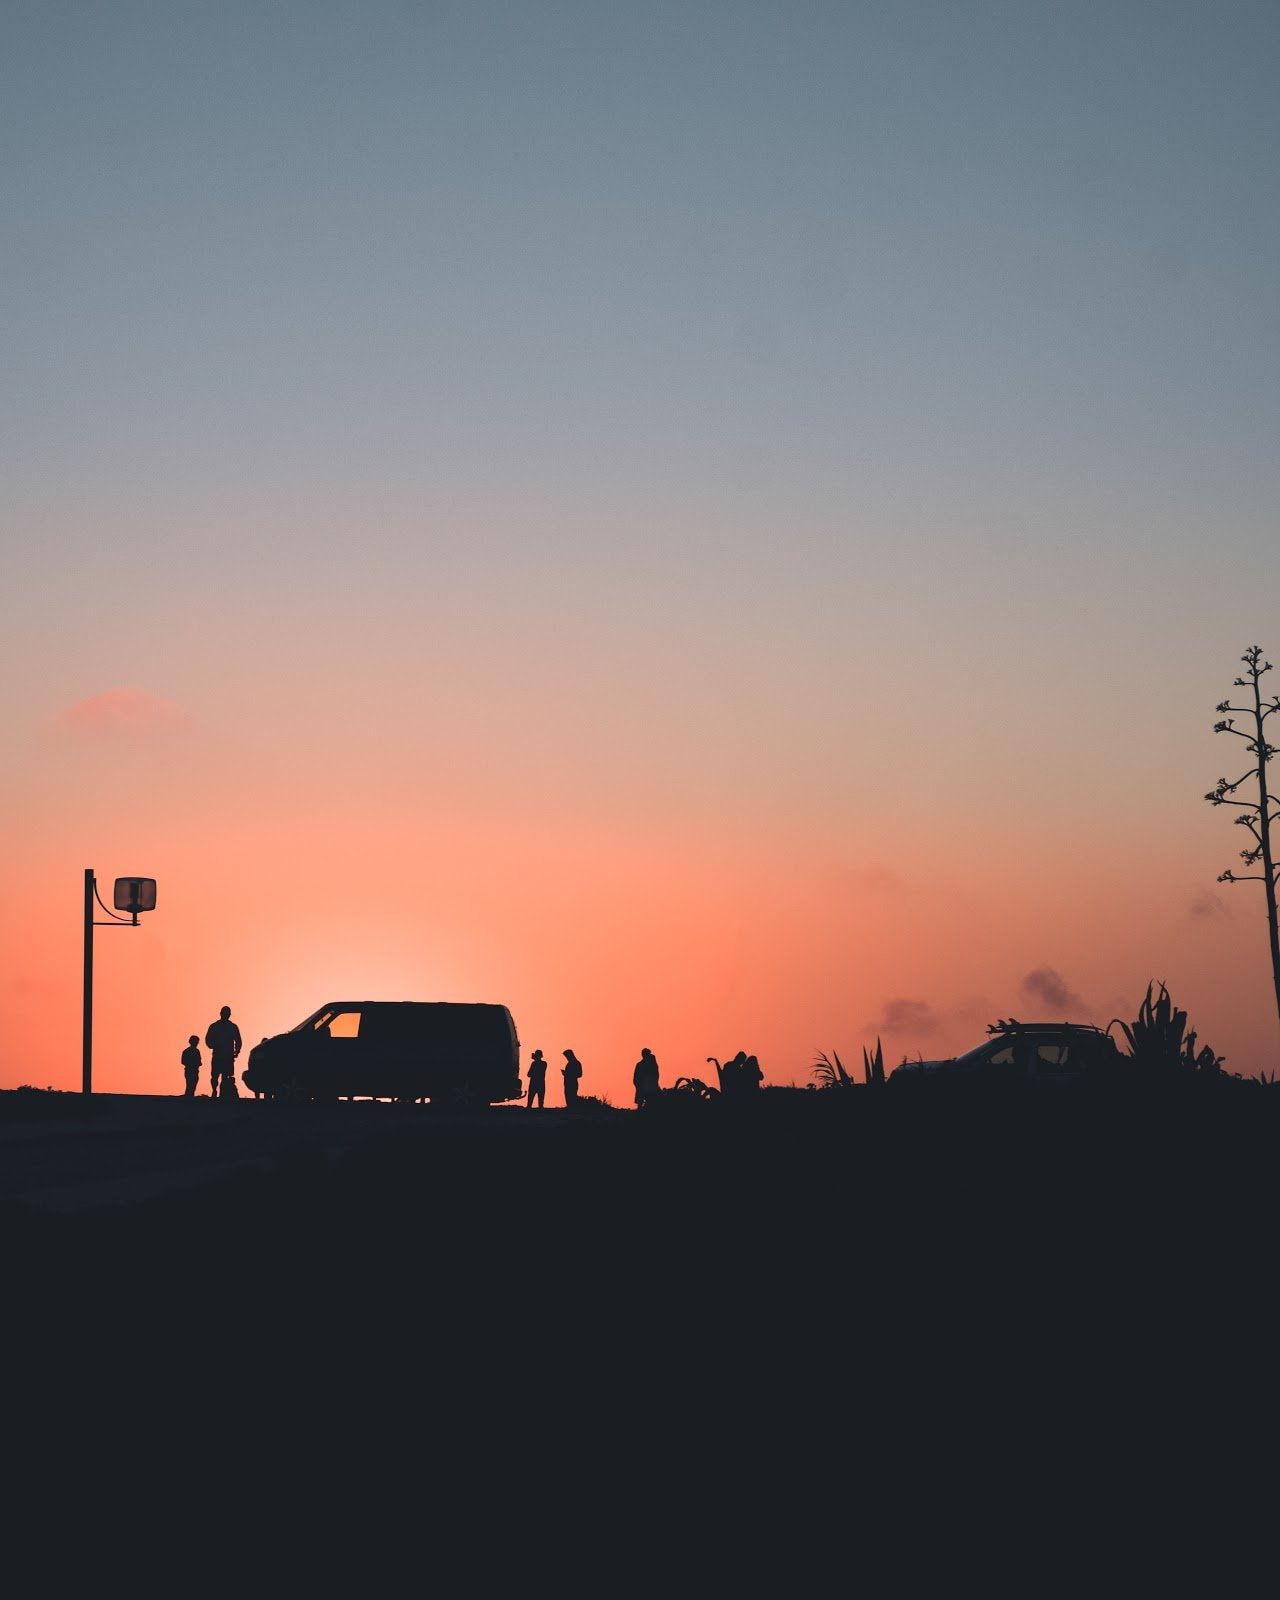 Silhouette of people and a van on a hill during sunset by Diogo Sousa